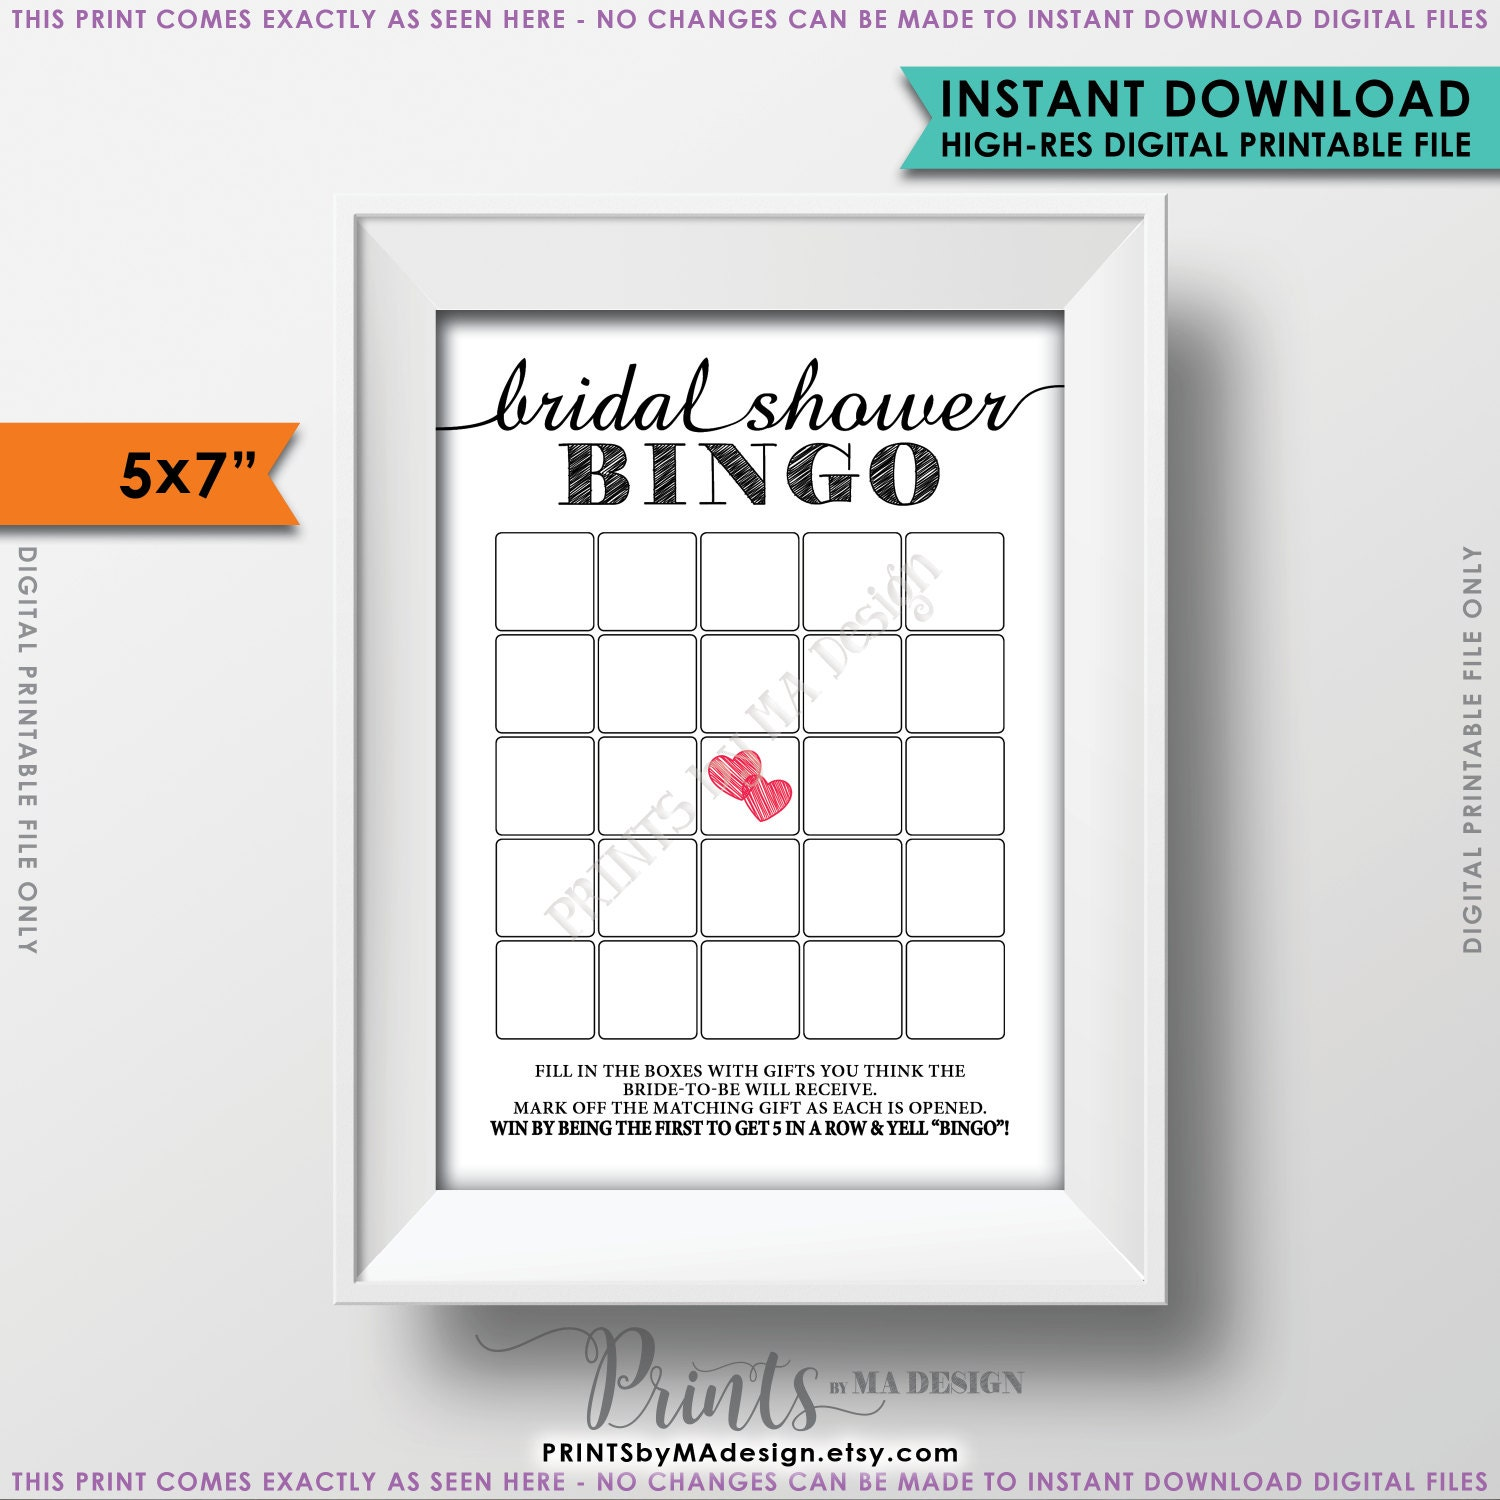 bridal shower bingo cards bridal shower bingo printable blank bridal shower bingo game bridal bingo card printable 5x7 bingo cards